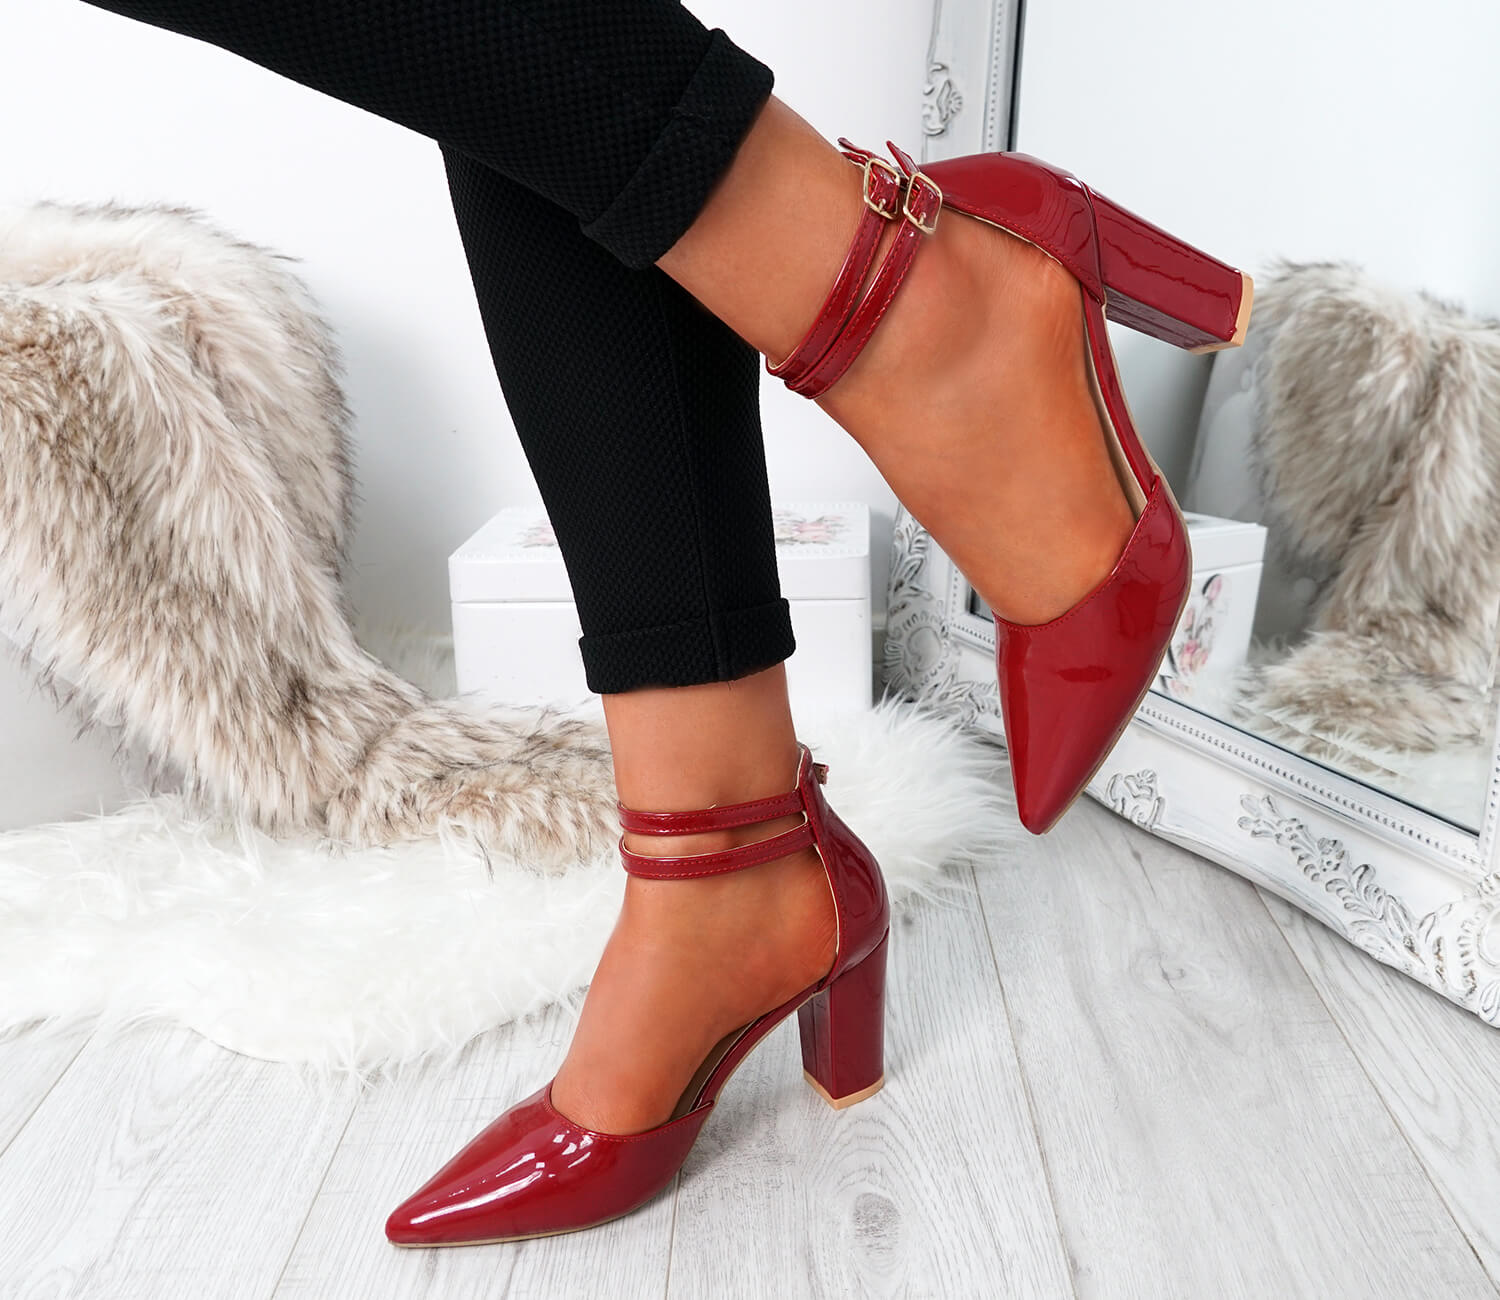 WOMENS-LADIES-ANKLE-DOUBLE-STRAP-HIGH-BLOCK-HEEL-POINTED-TOE-PARTY-SHOES-SIZE thumbnail 12